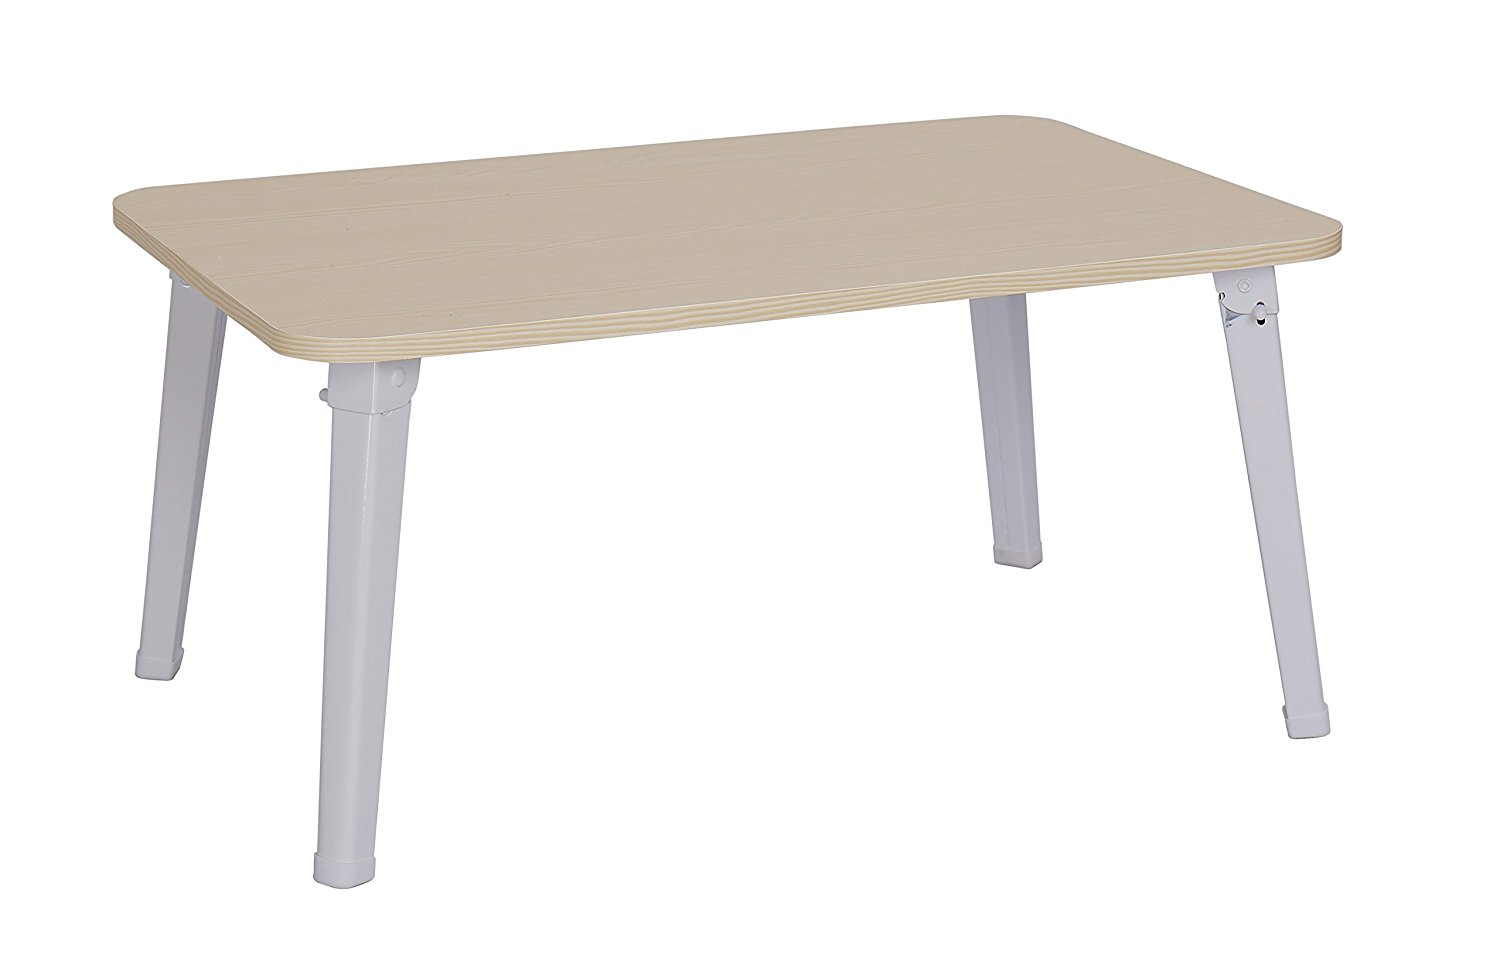 """MULSH Laptop Desk Bed Table Laptop Bed Tray Notebook Table Foldable Breakfast Serving Tray For Sofa Bed with Metal Legs and MDF Top Board in White Oak,23.62""""W X15.75""""D X11.3""""H"""